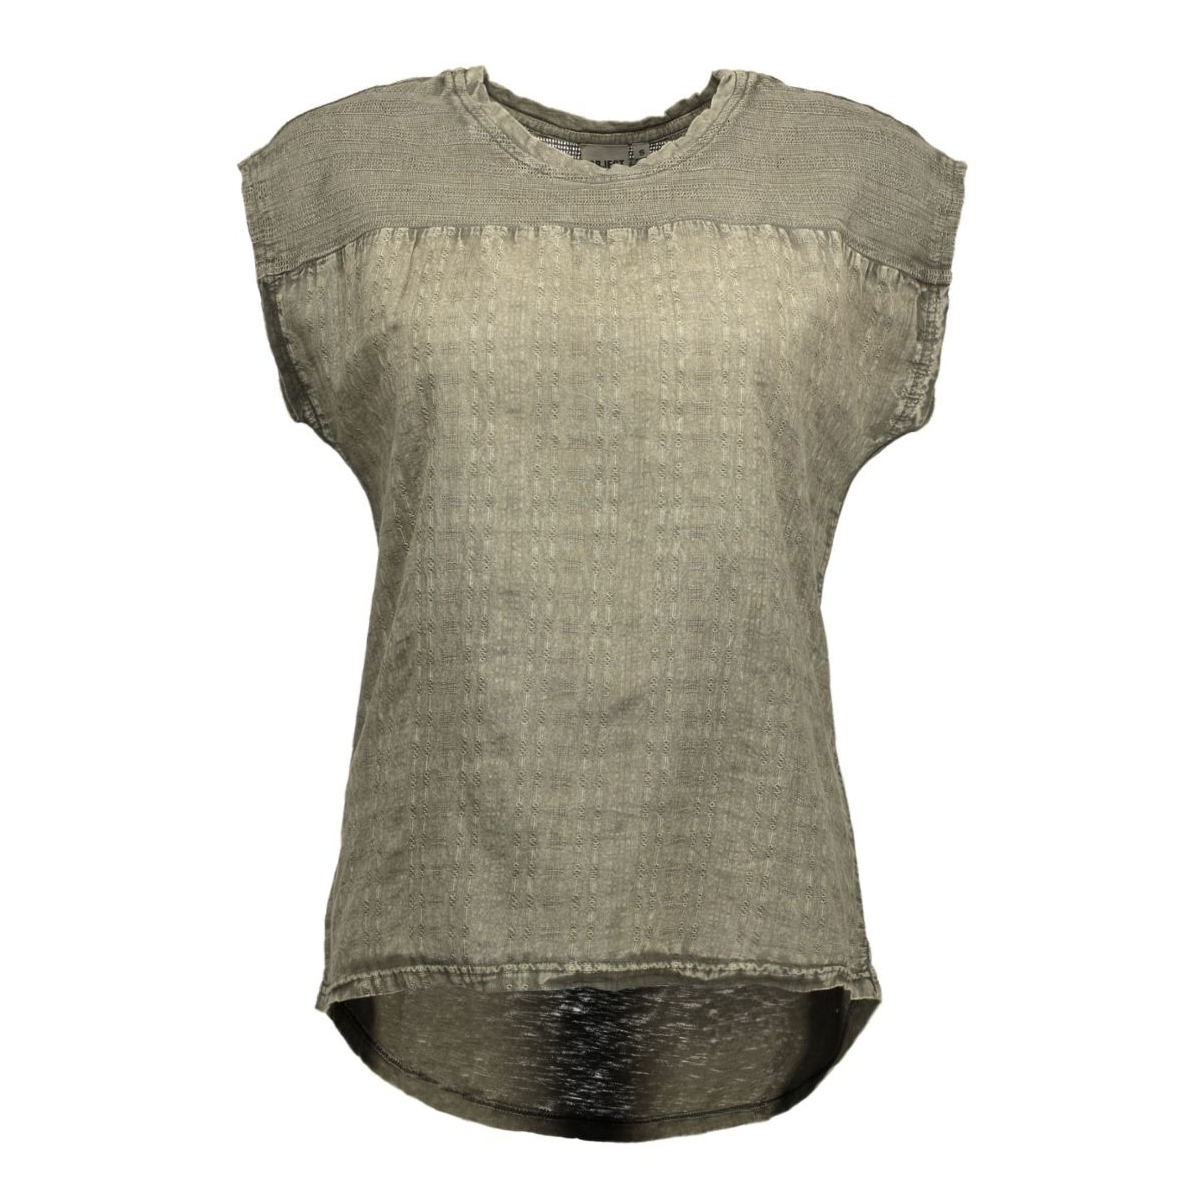 objsavannah s/s top 85 23022362 object t-shirt forest night